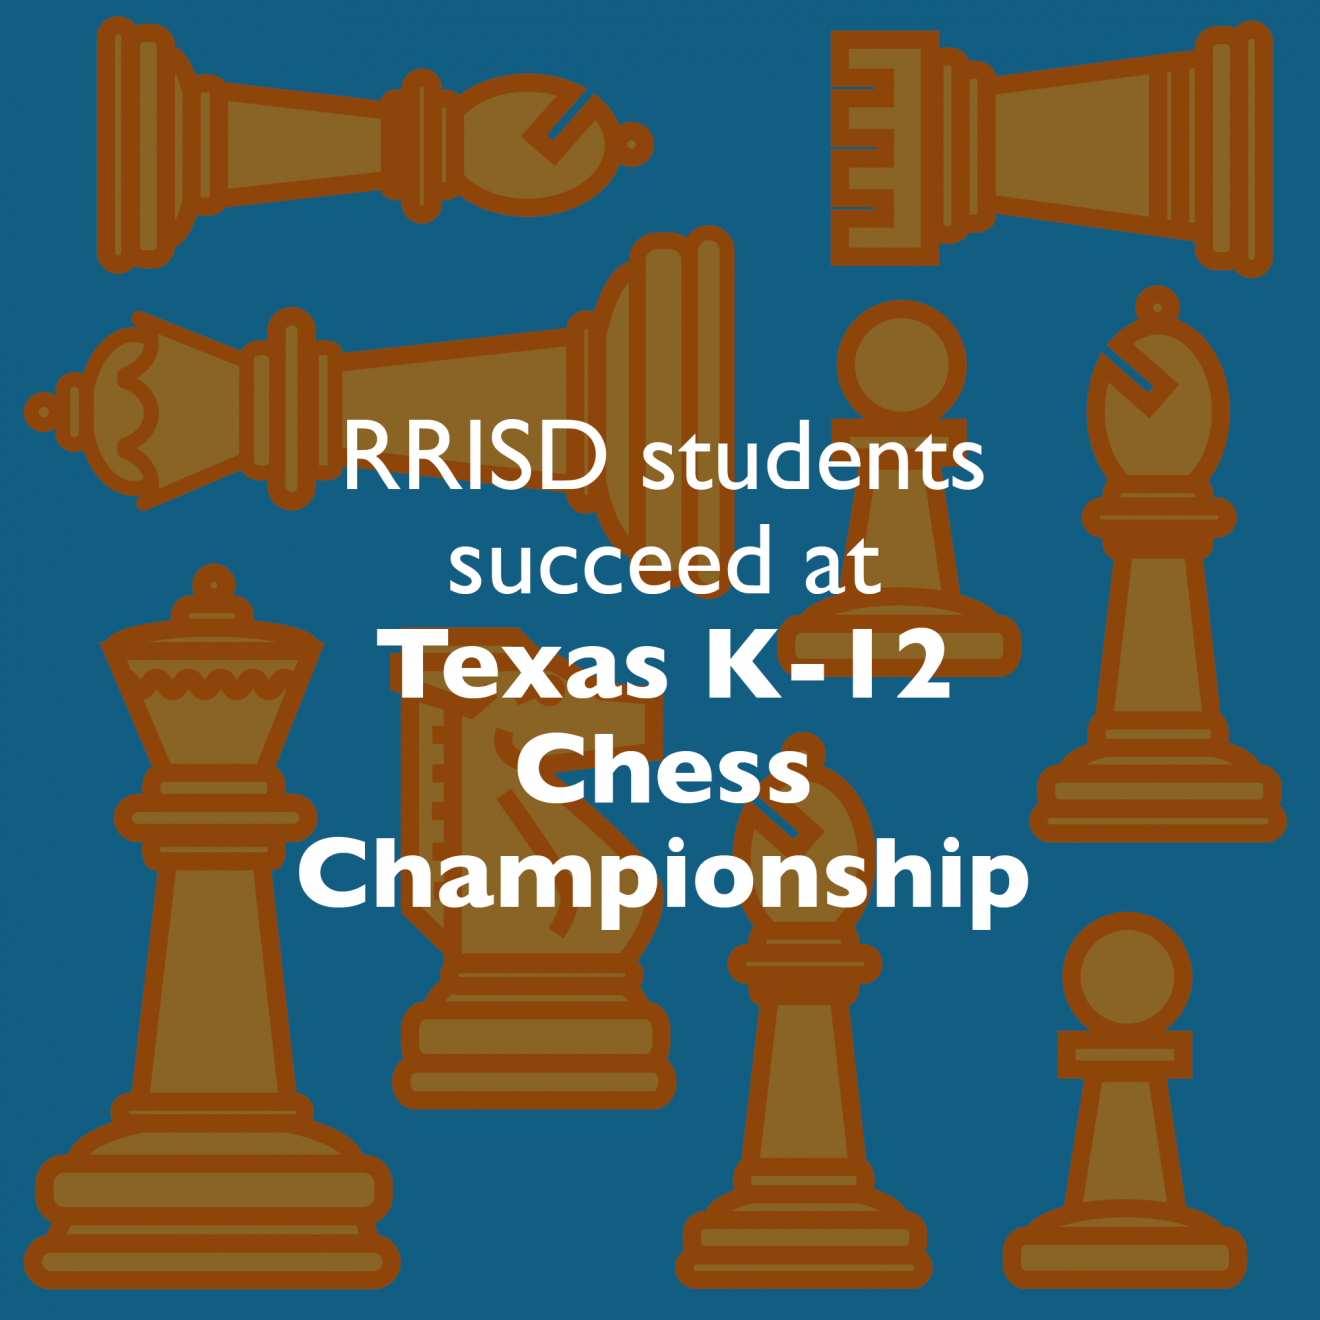 RRISD students succeed at Texas K-12 Chess Championship